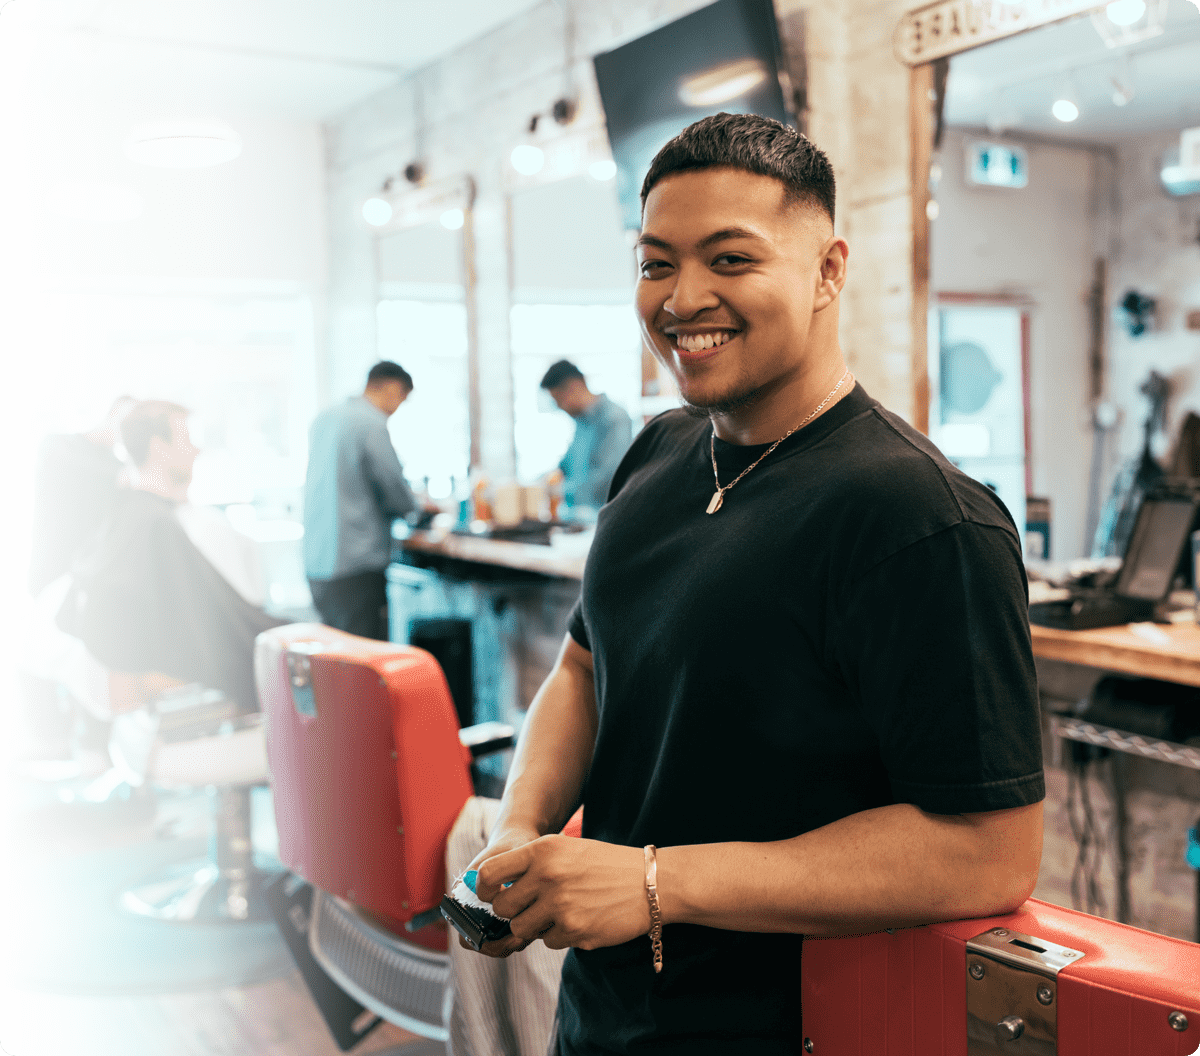 A man smiling after a haircut